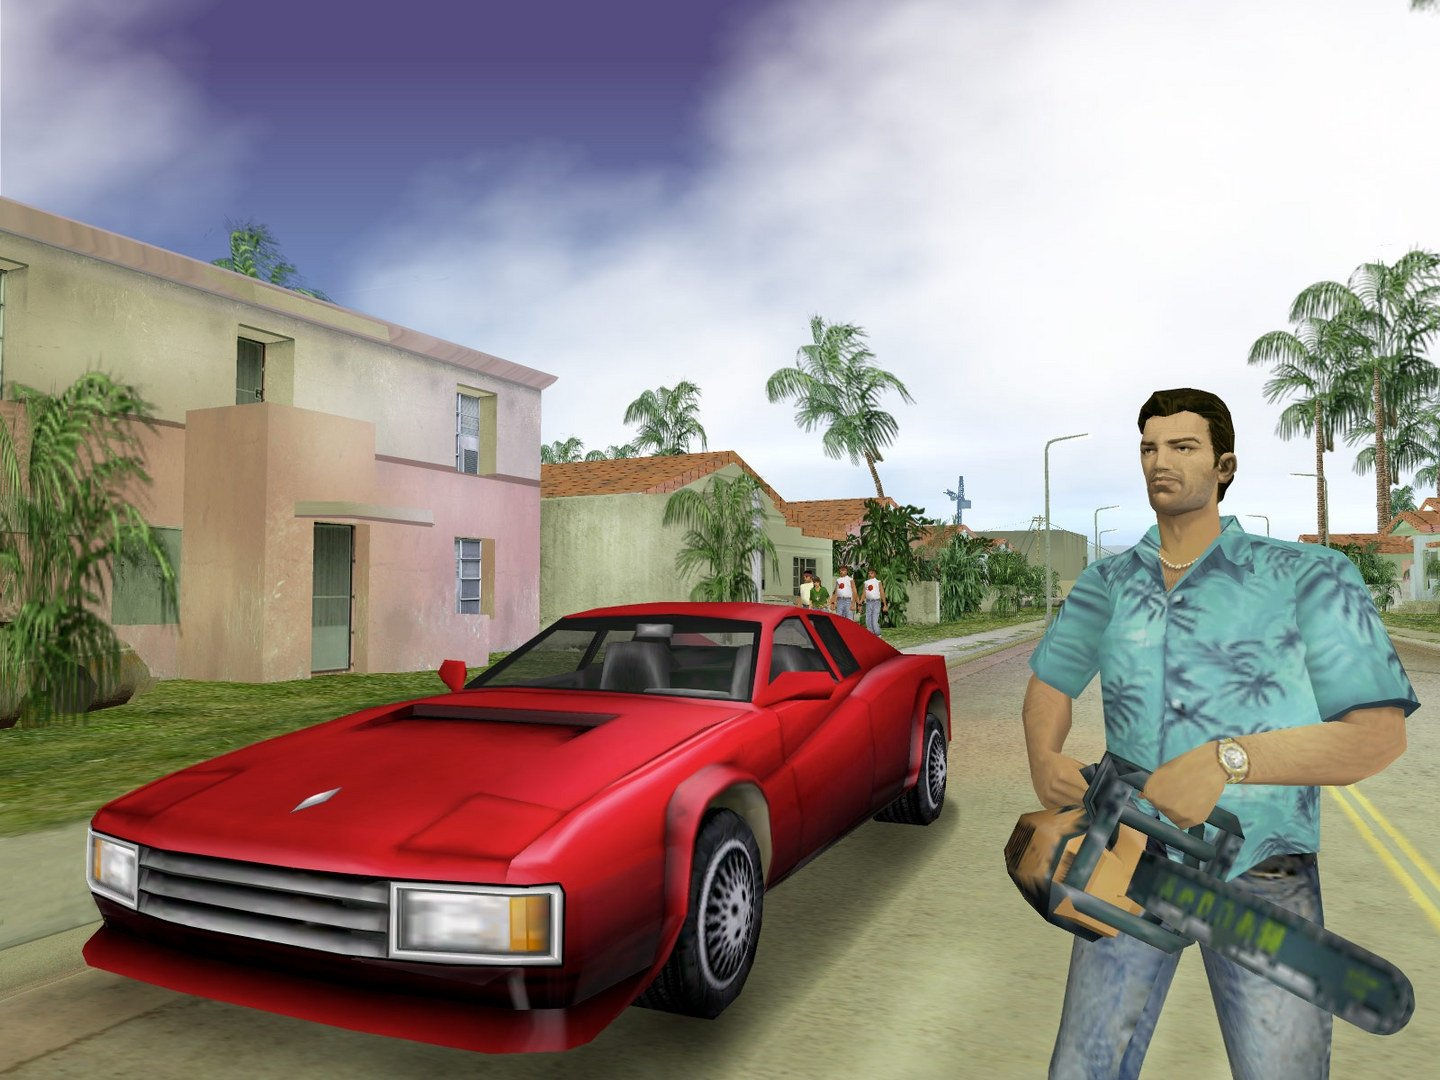 gta vice city nfs underground 2 download utorrent